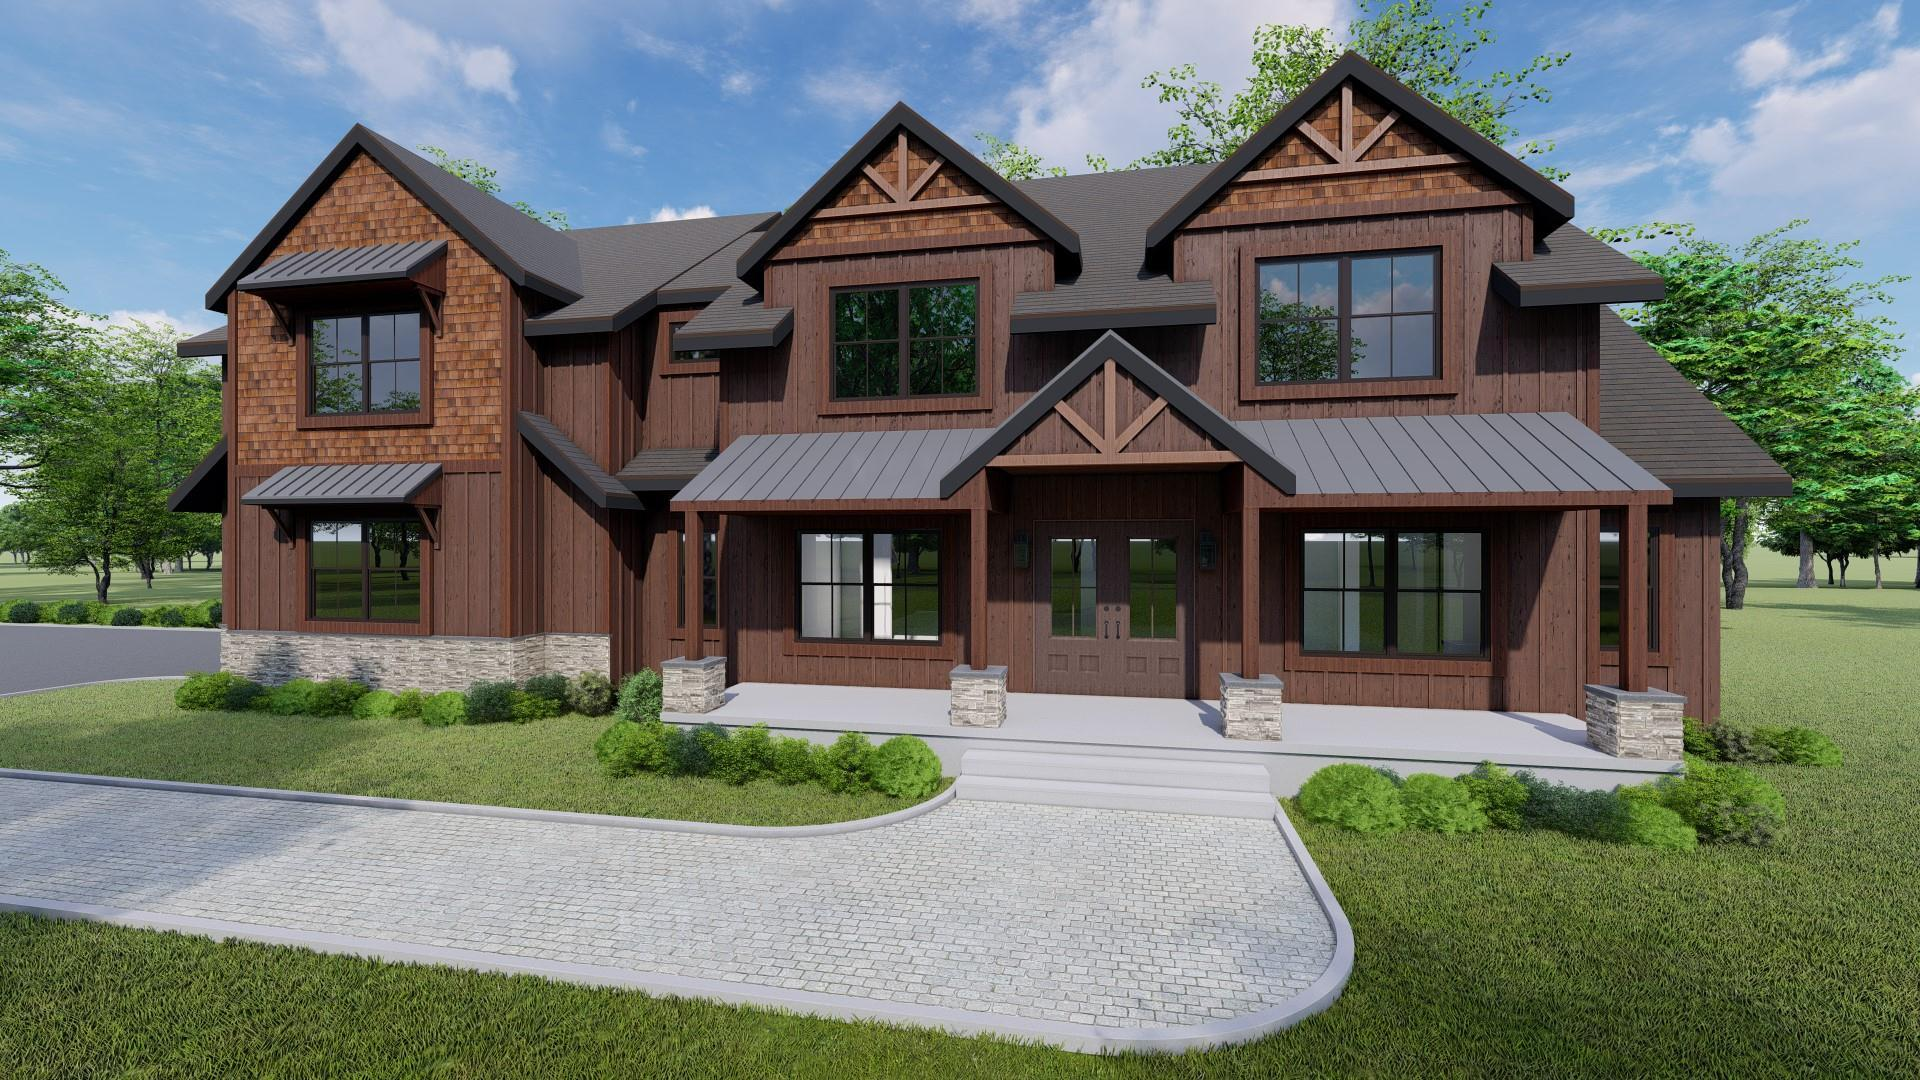 Exterior featured in The Albatross By Realty Promotions, Inc. in Orange County, NY